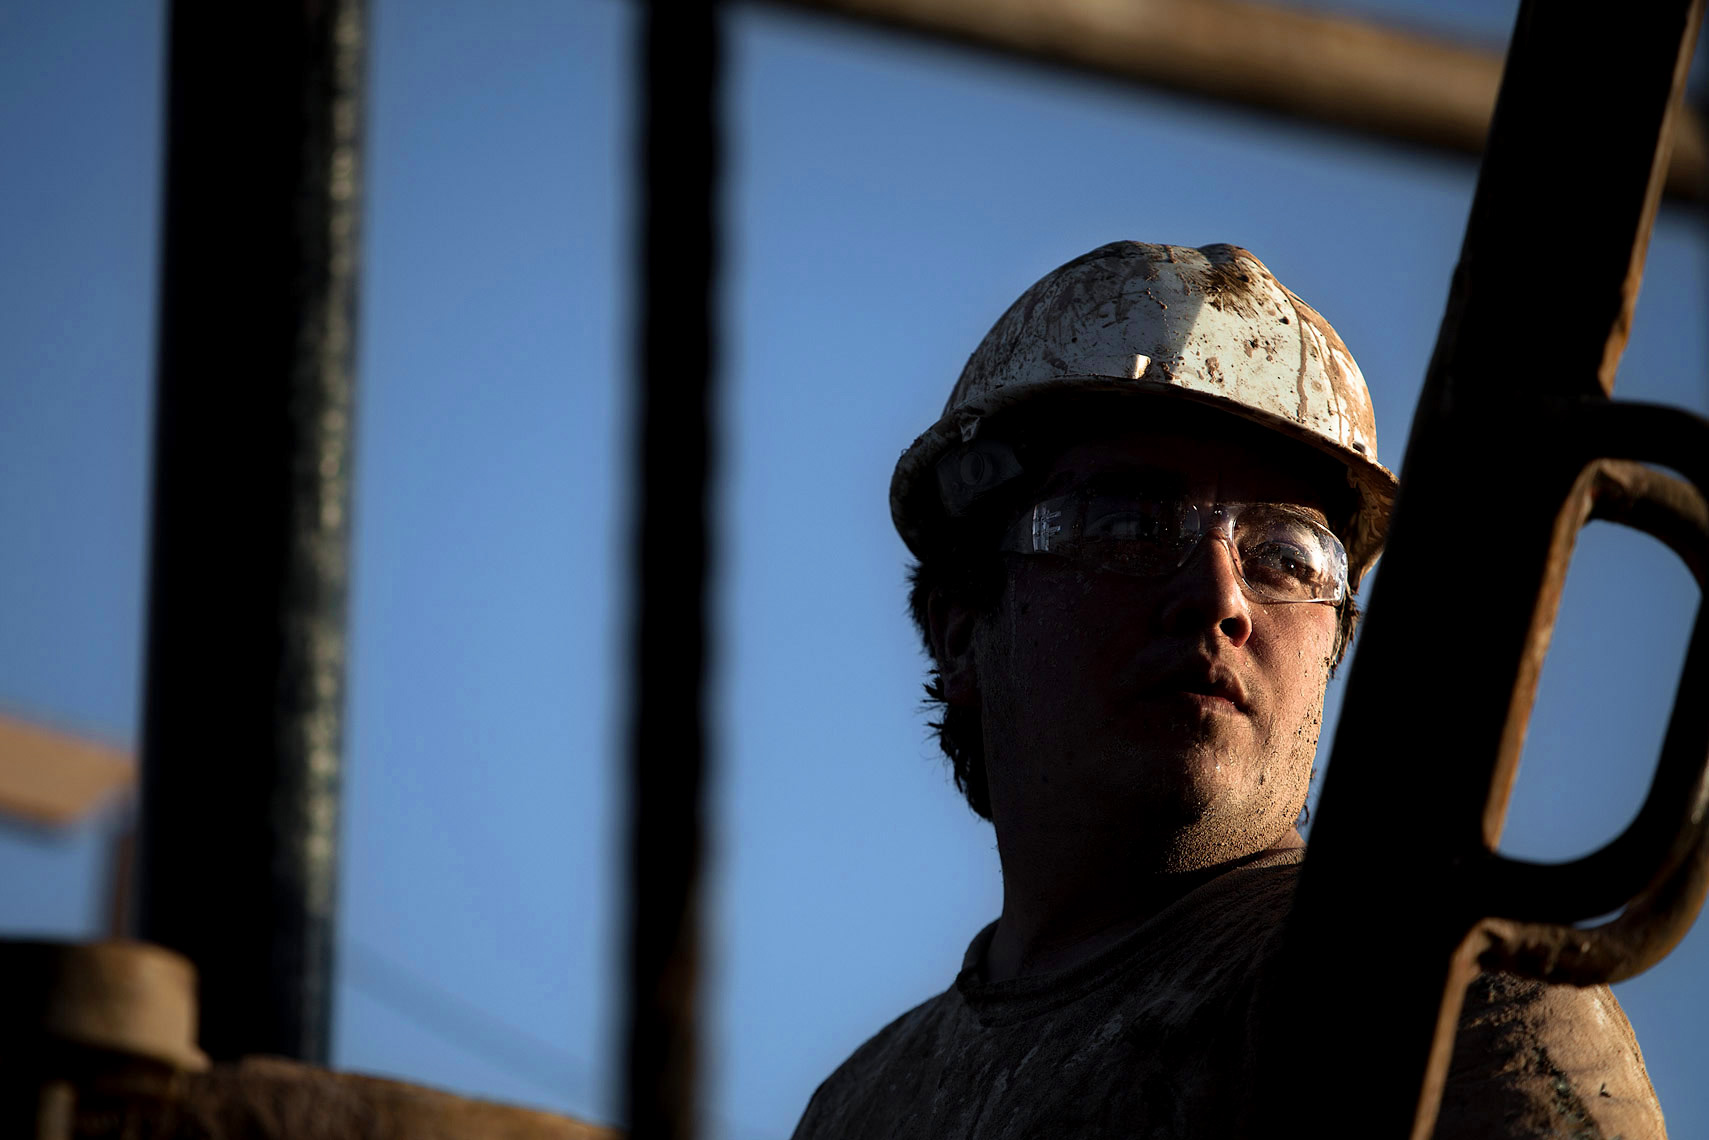 Headshot of an oil rig worker | Scott Gable industrial photographer